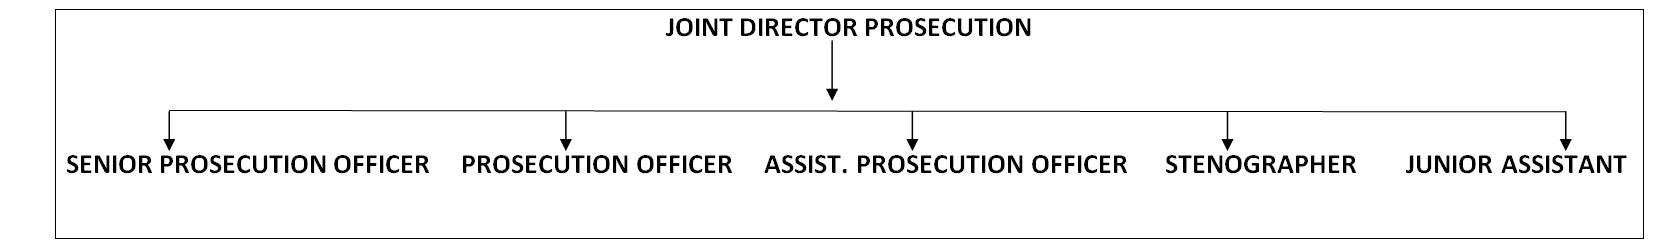 JOINT DIRECTOR PROSECUTION